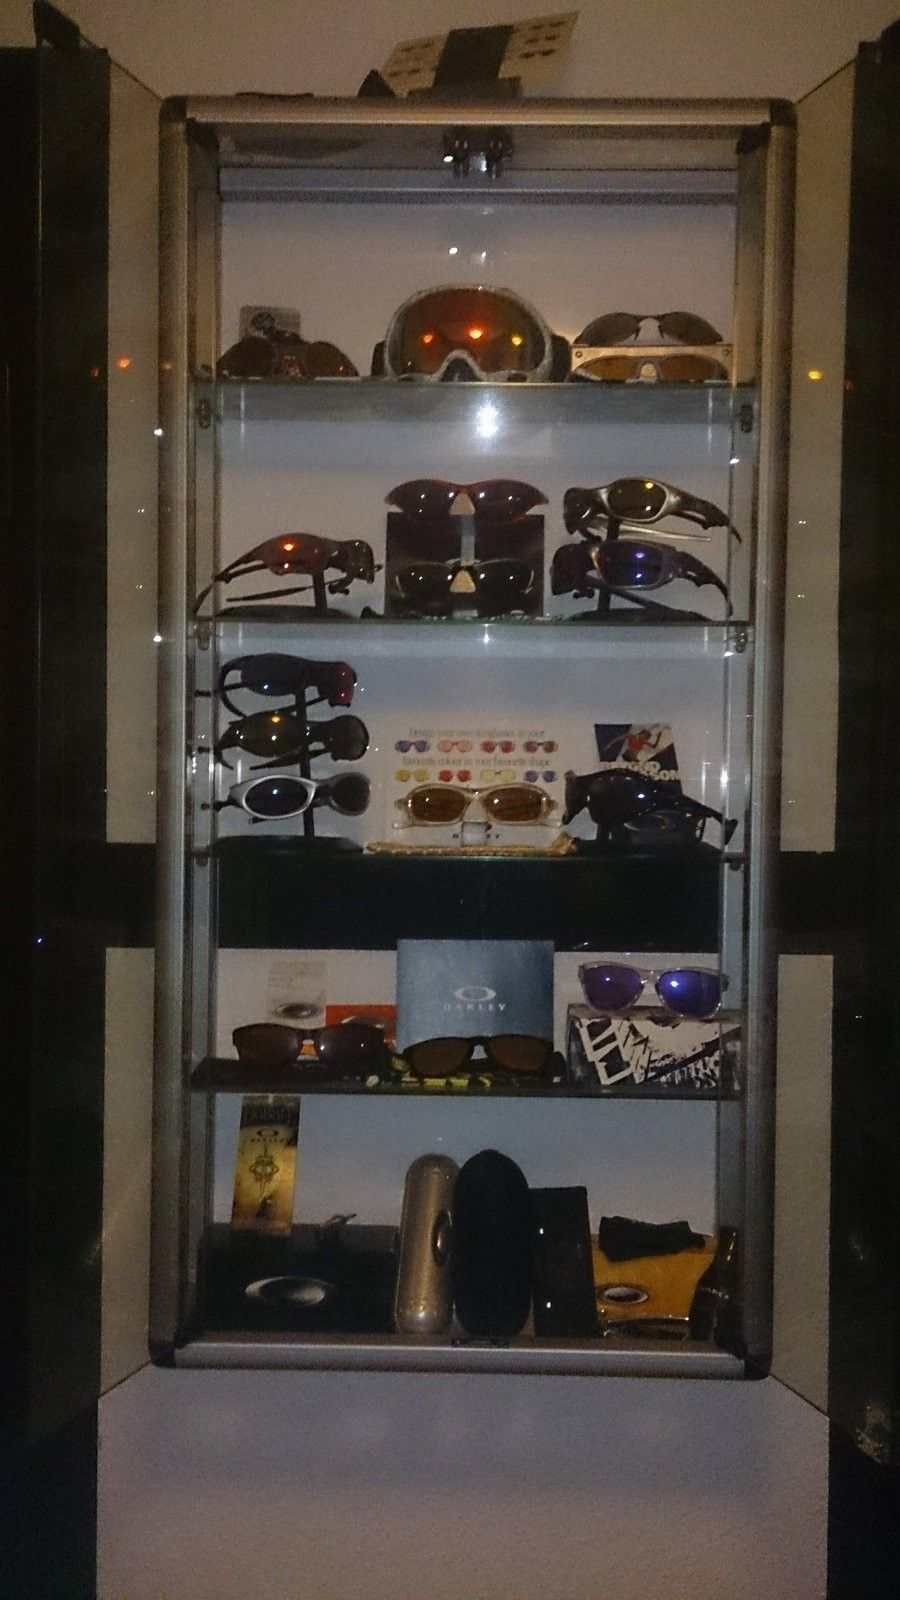 My Sweet collection - DSC_0320.JPG